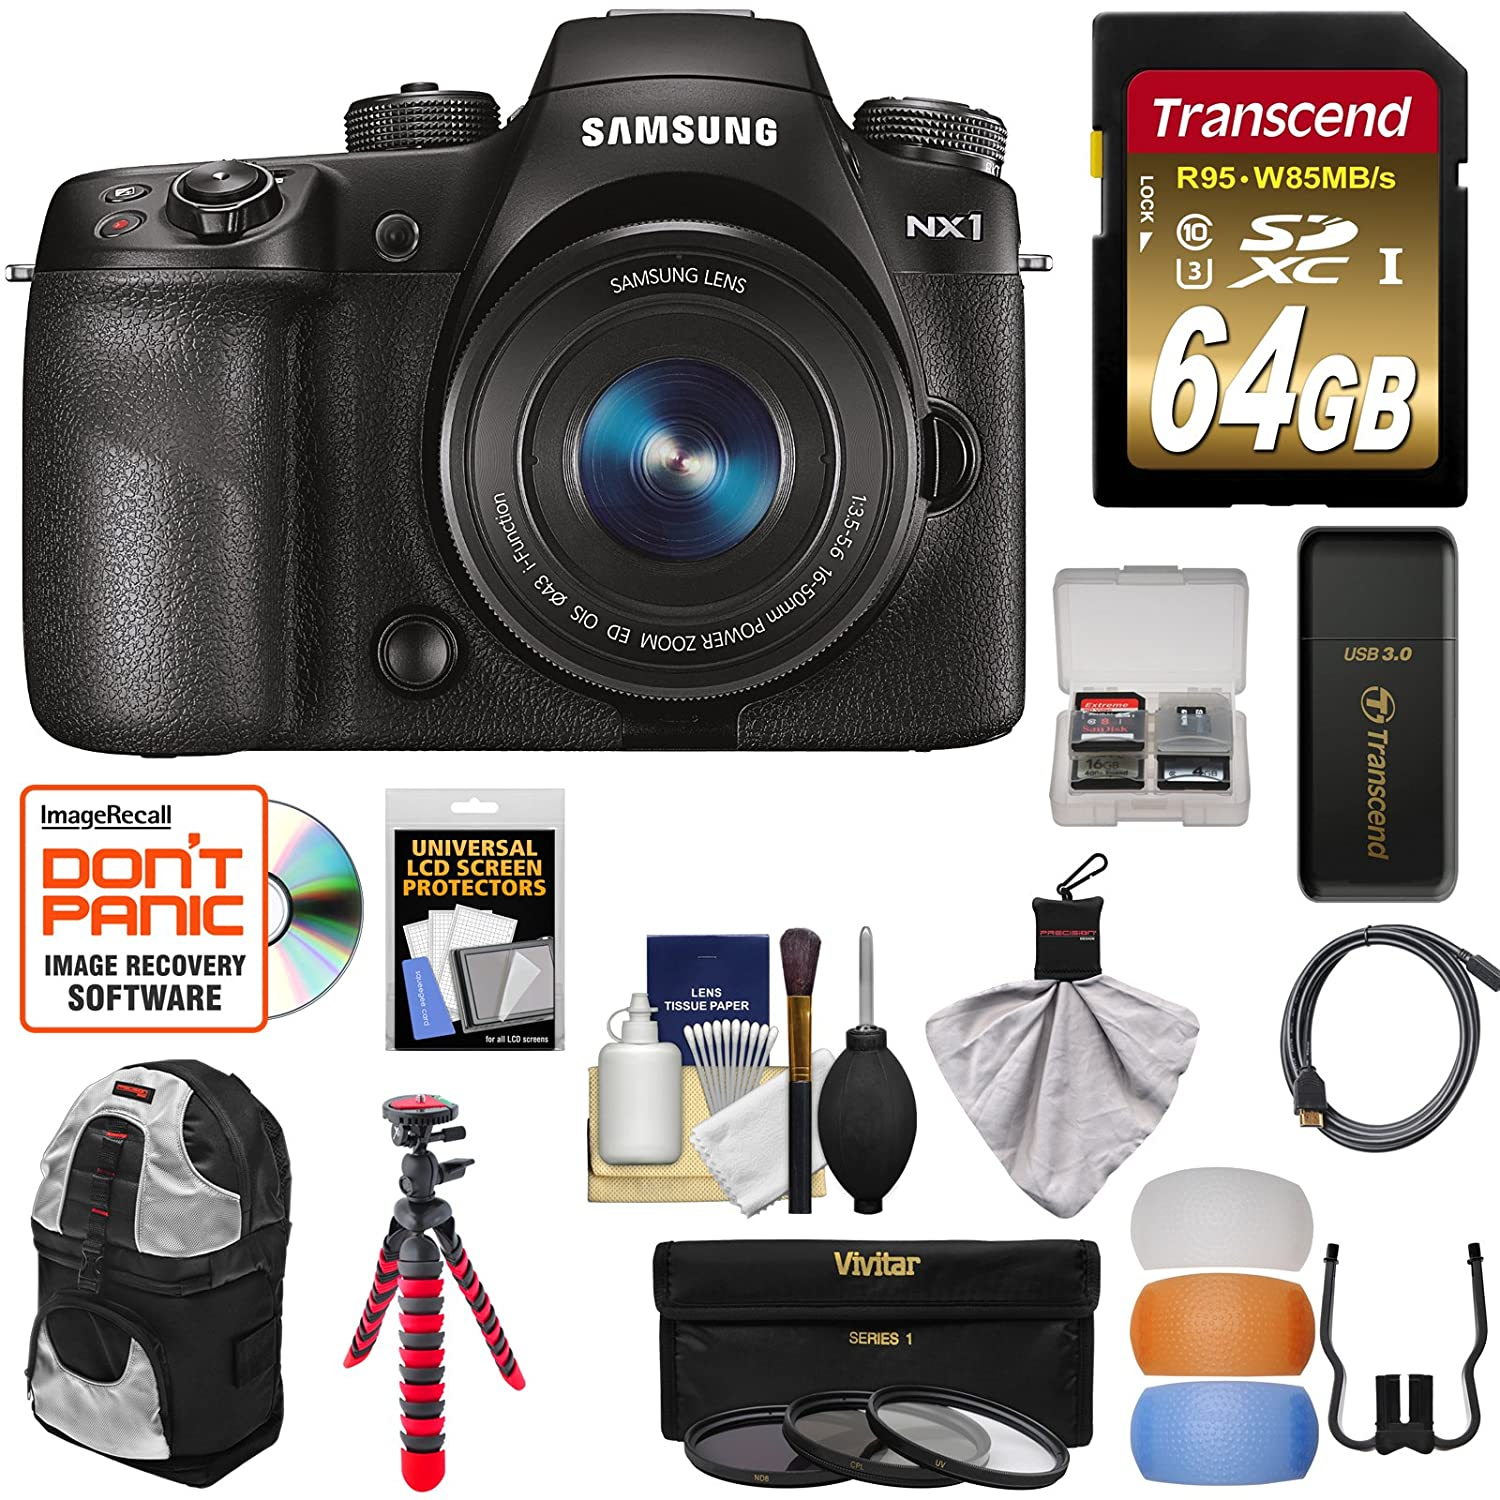 Samsung NX1 Smart Wi-Fi 4K Digital Camera & 16-50mm PZ Lens with 64GB Card + Backpack + Tripod + 3 Filters + Kit